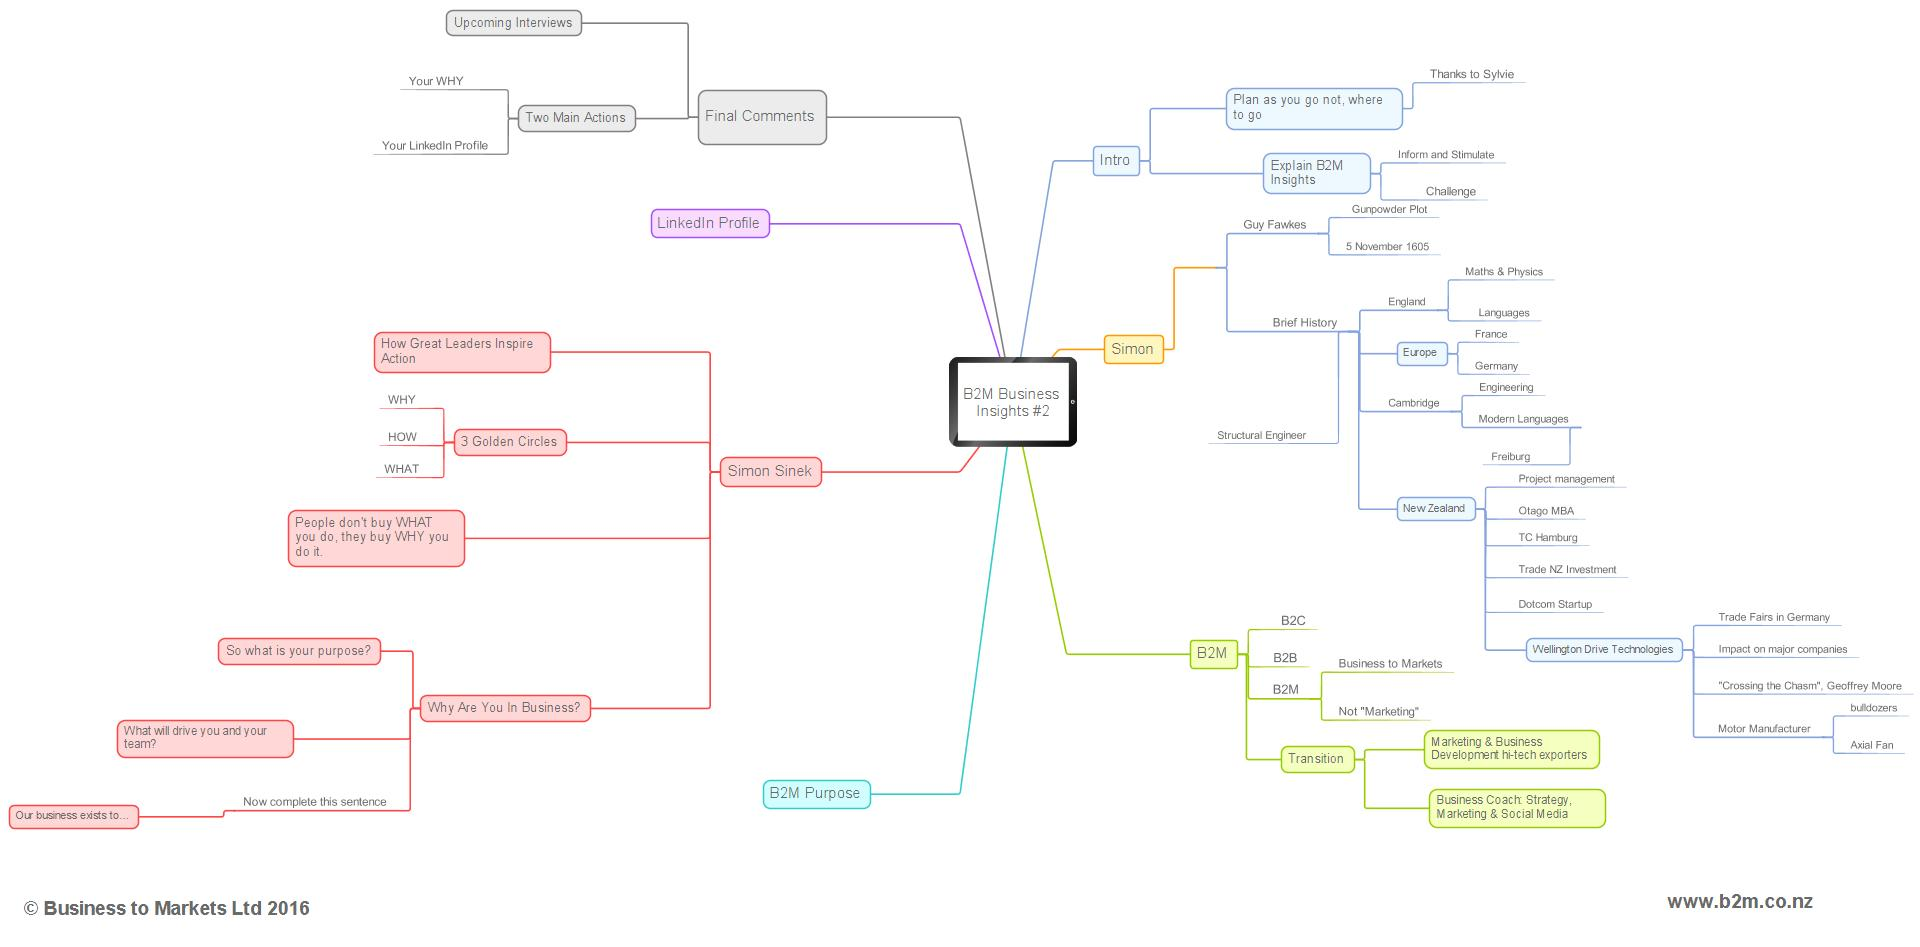 B2M Business Insights #2 Mind Map